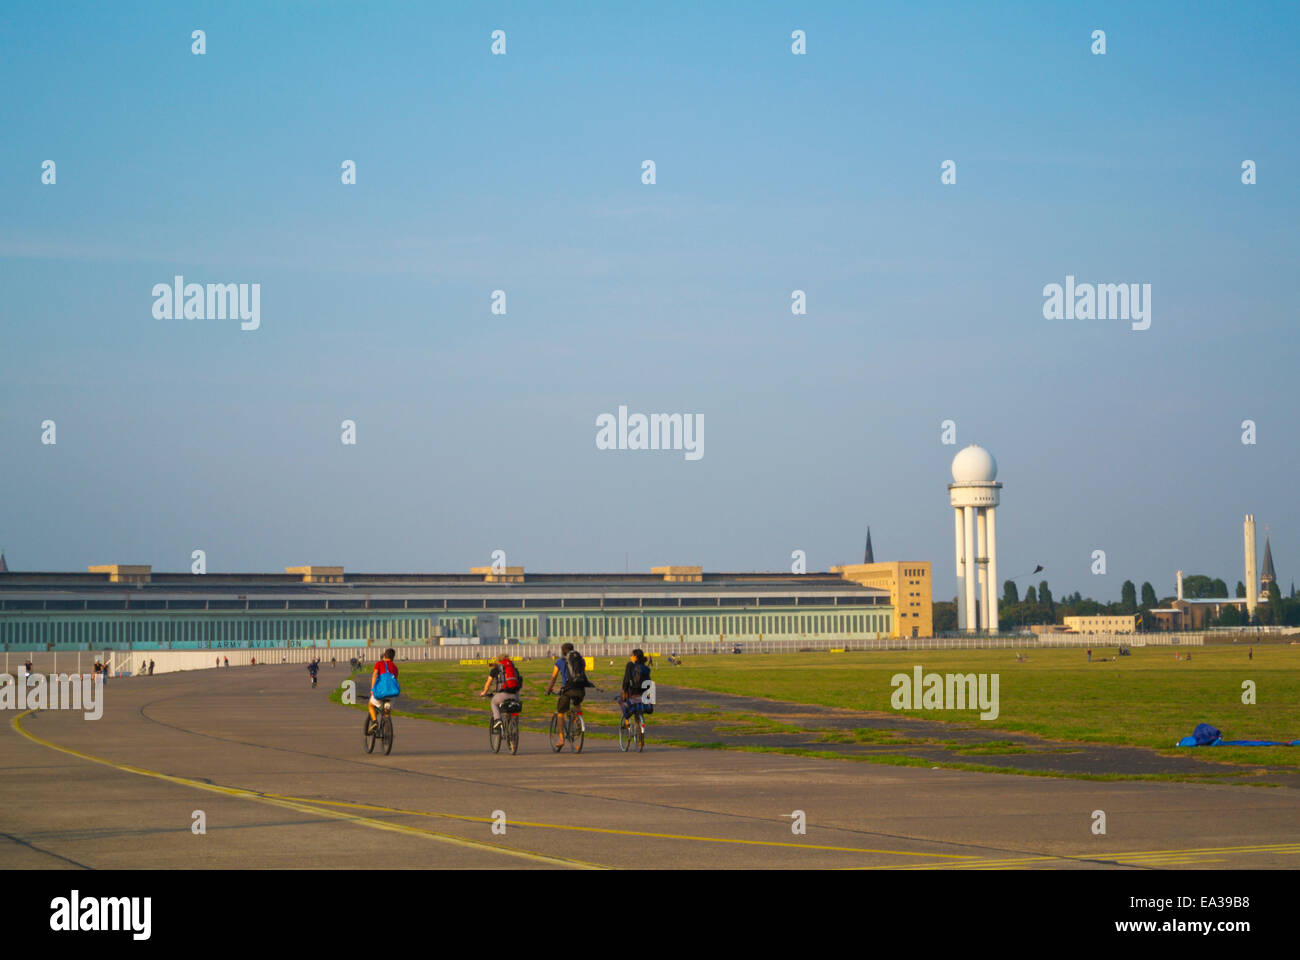 Tempelhof former airport, west Berlin, Germany - Stock Image